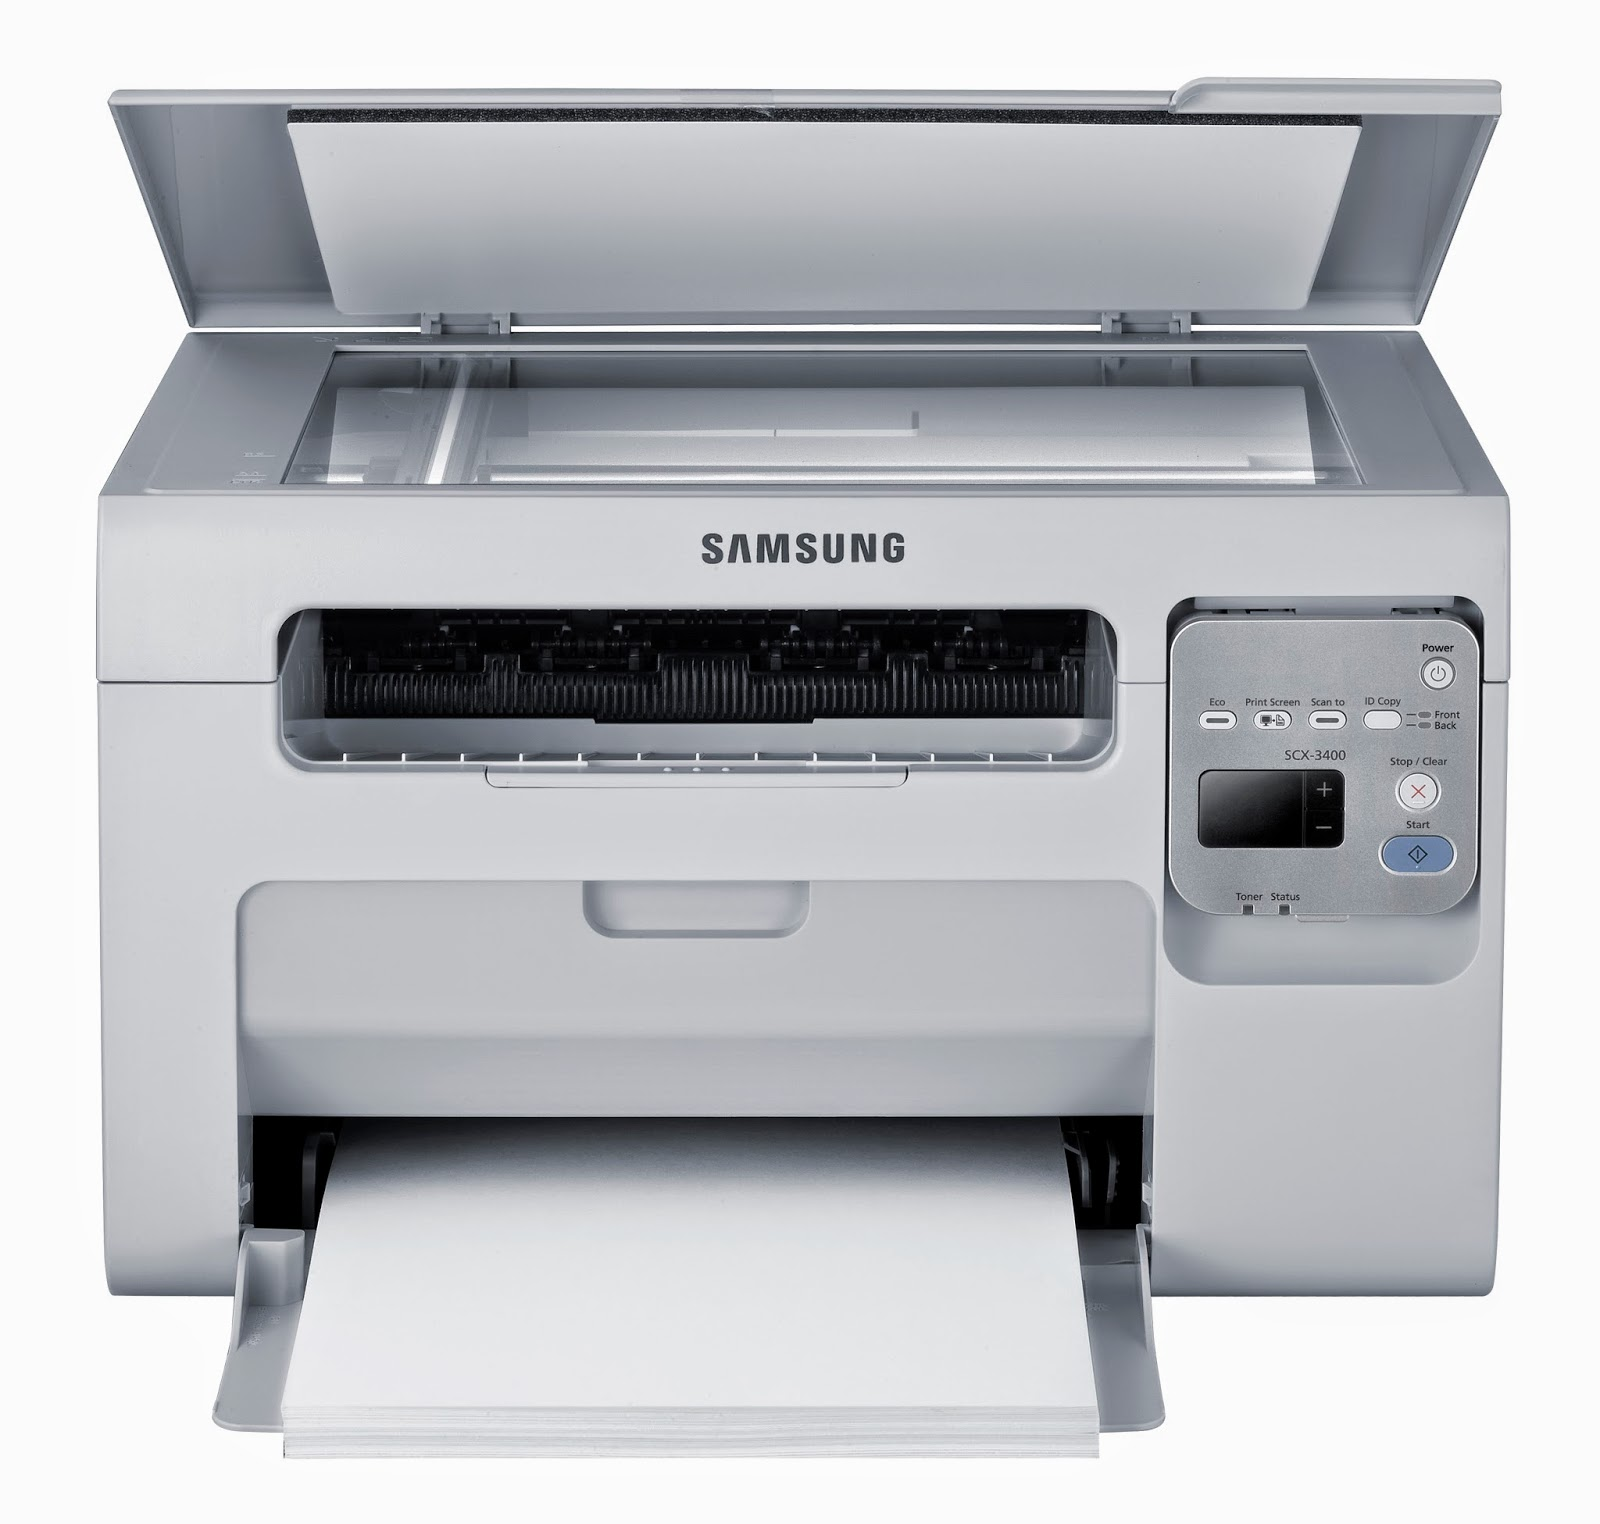 Lexmark 3400 Series Printer Driver Windows 7